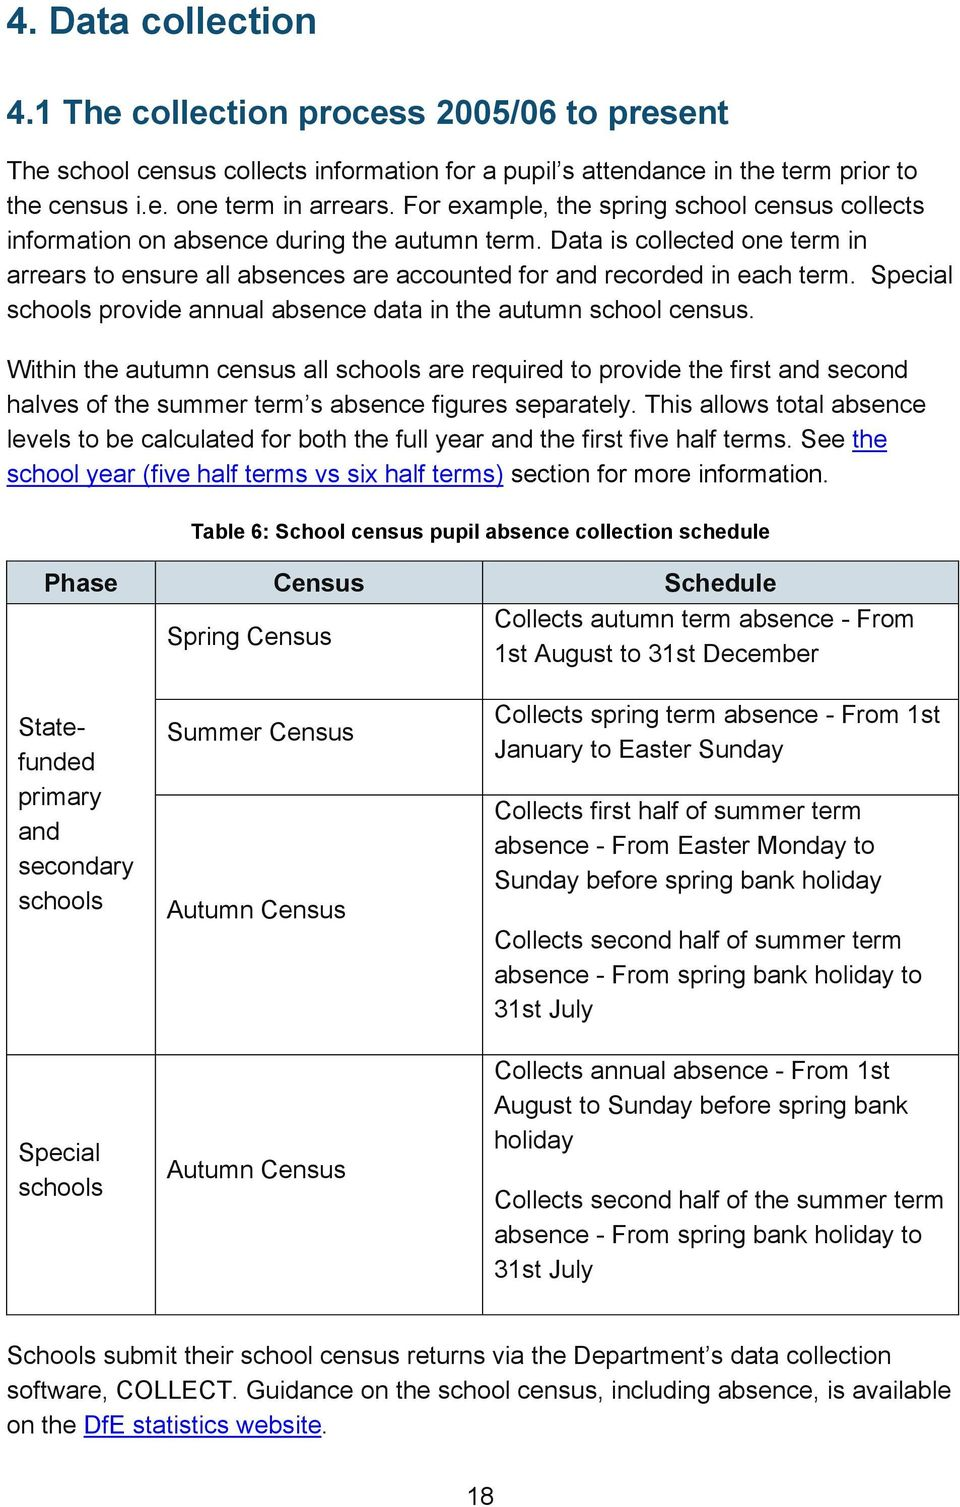 Special schools provide annual absence data in the autumn school census.